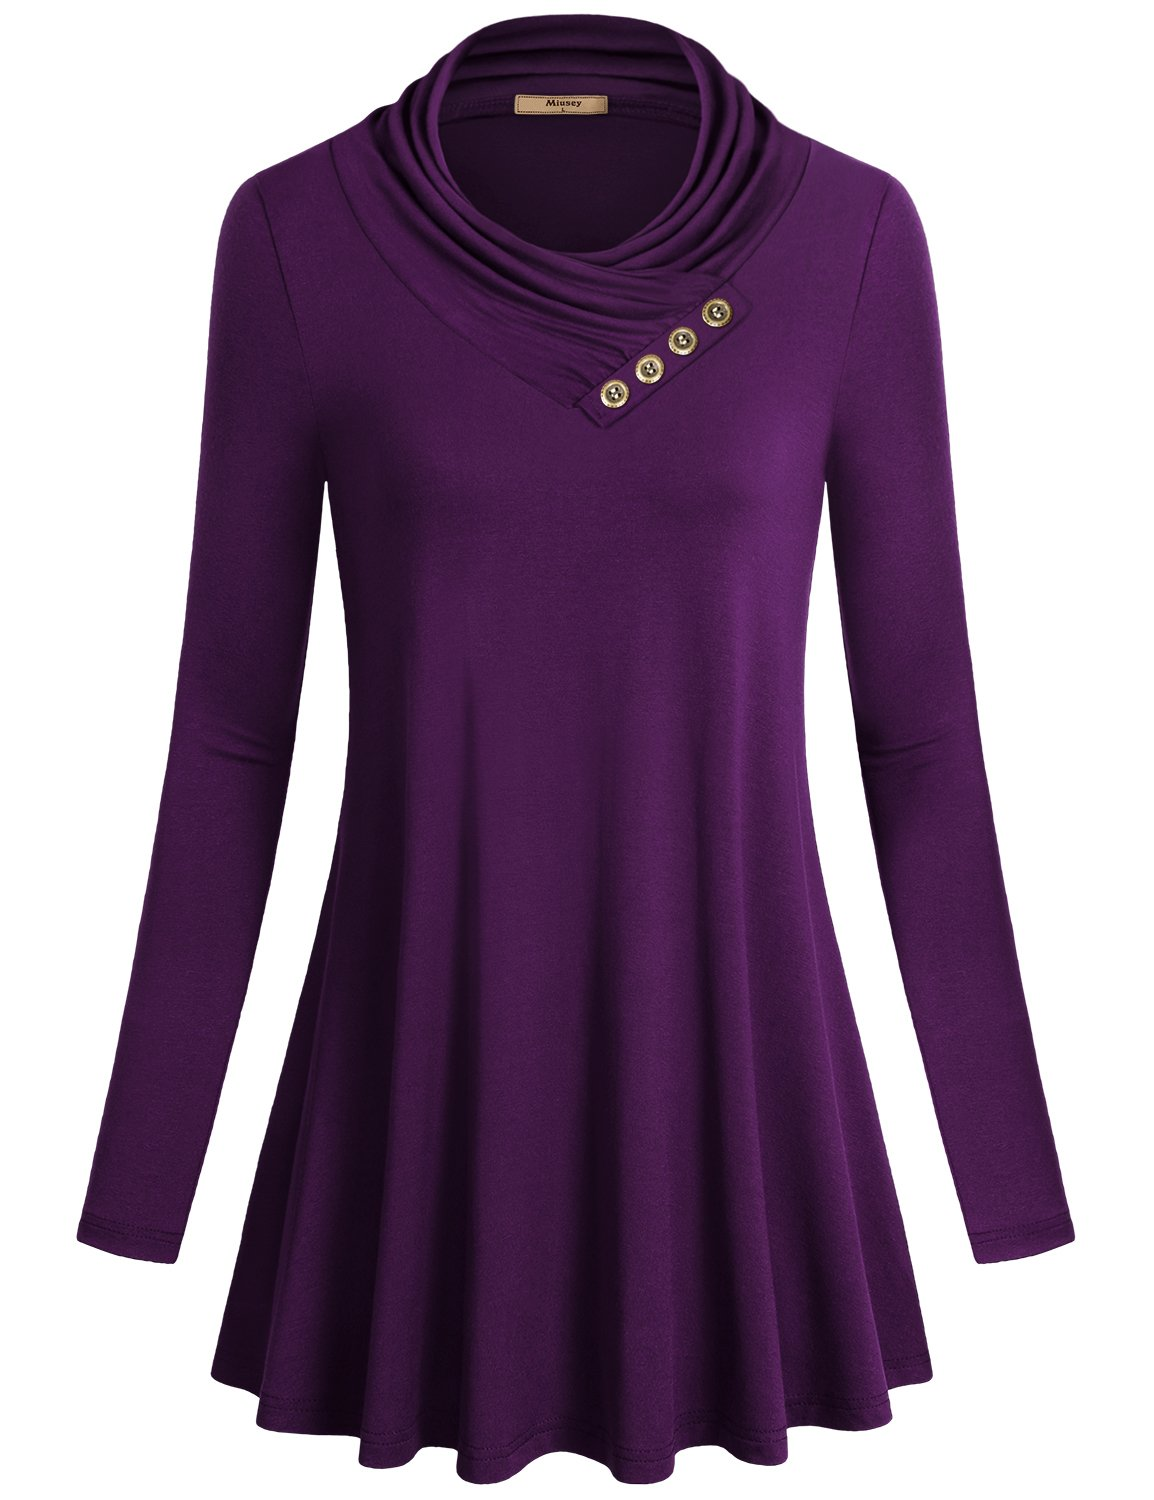 Miusey Tunics, Women's Long Sleeve Cowl Neck Comfy Loose Fit Swing Casual Top Purple Small